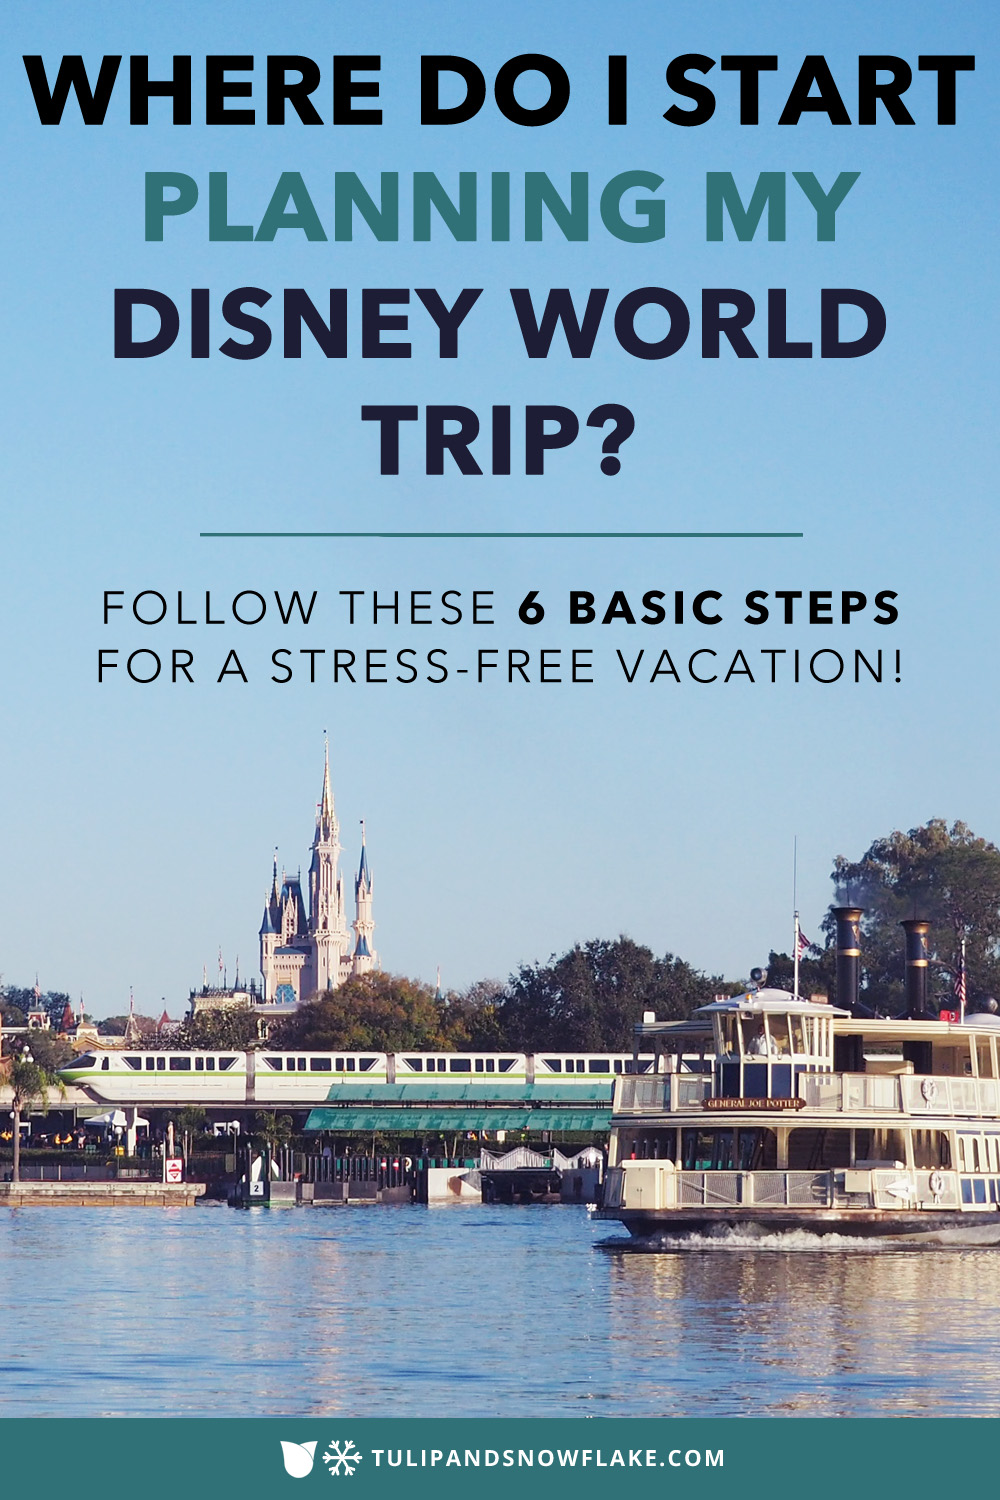 Planning your Disney World trip